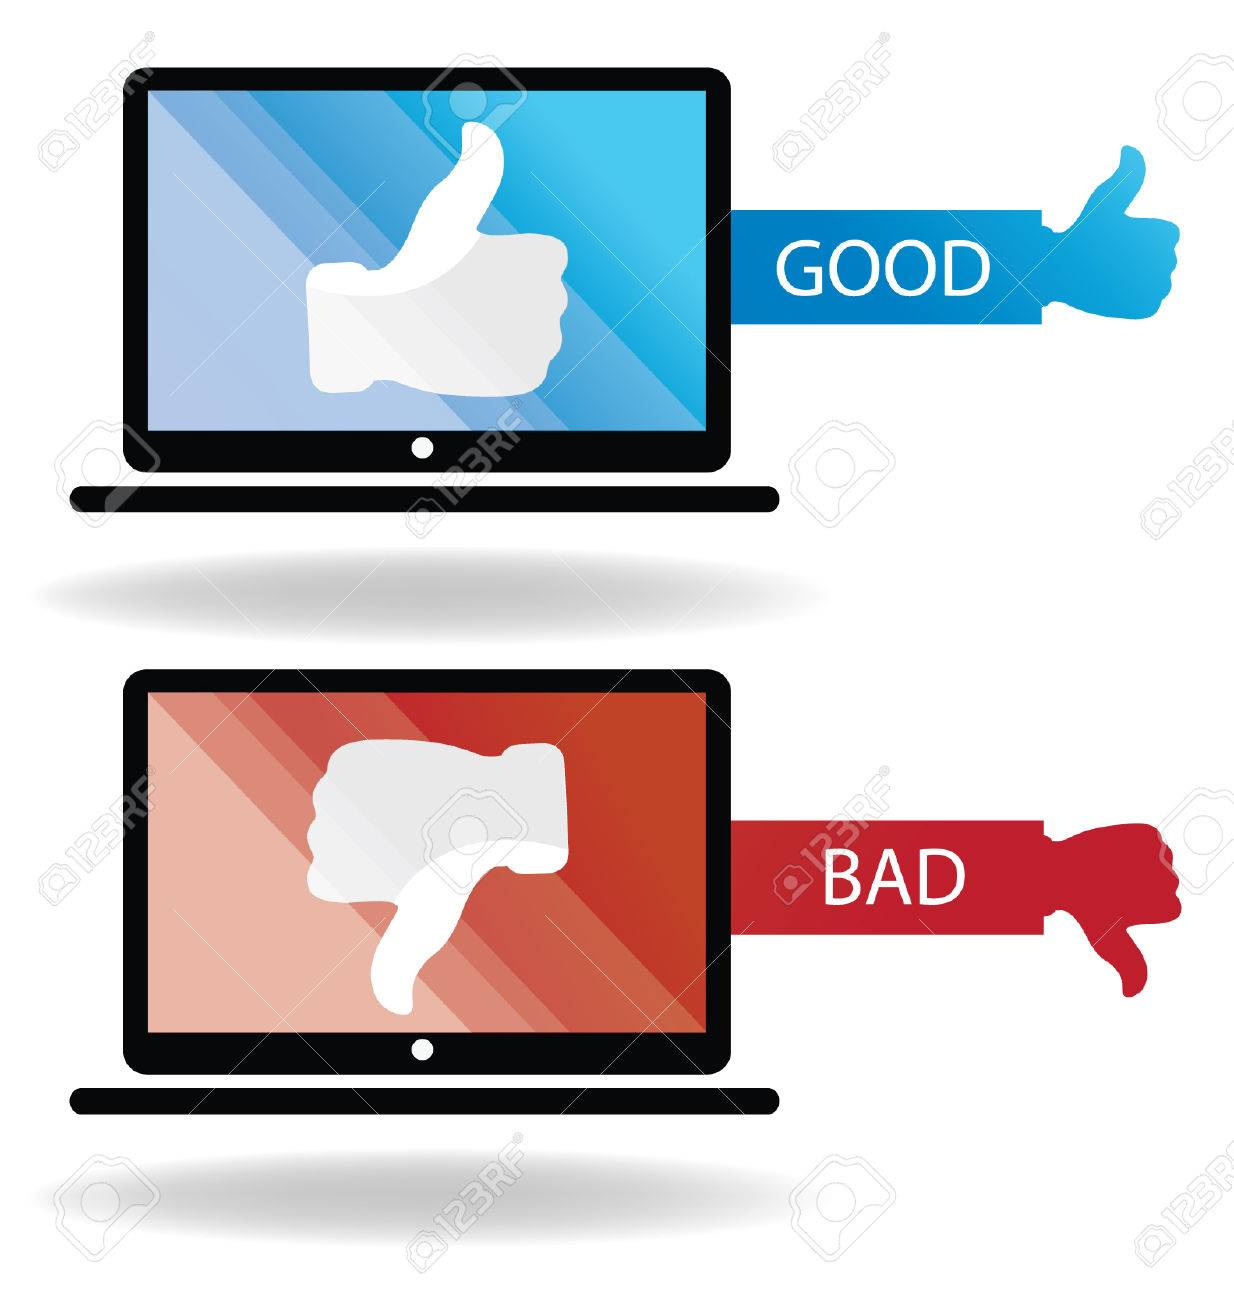 Social media  Hand signs vector  Good and bad concept Stock Vector - 24766697